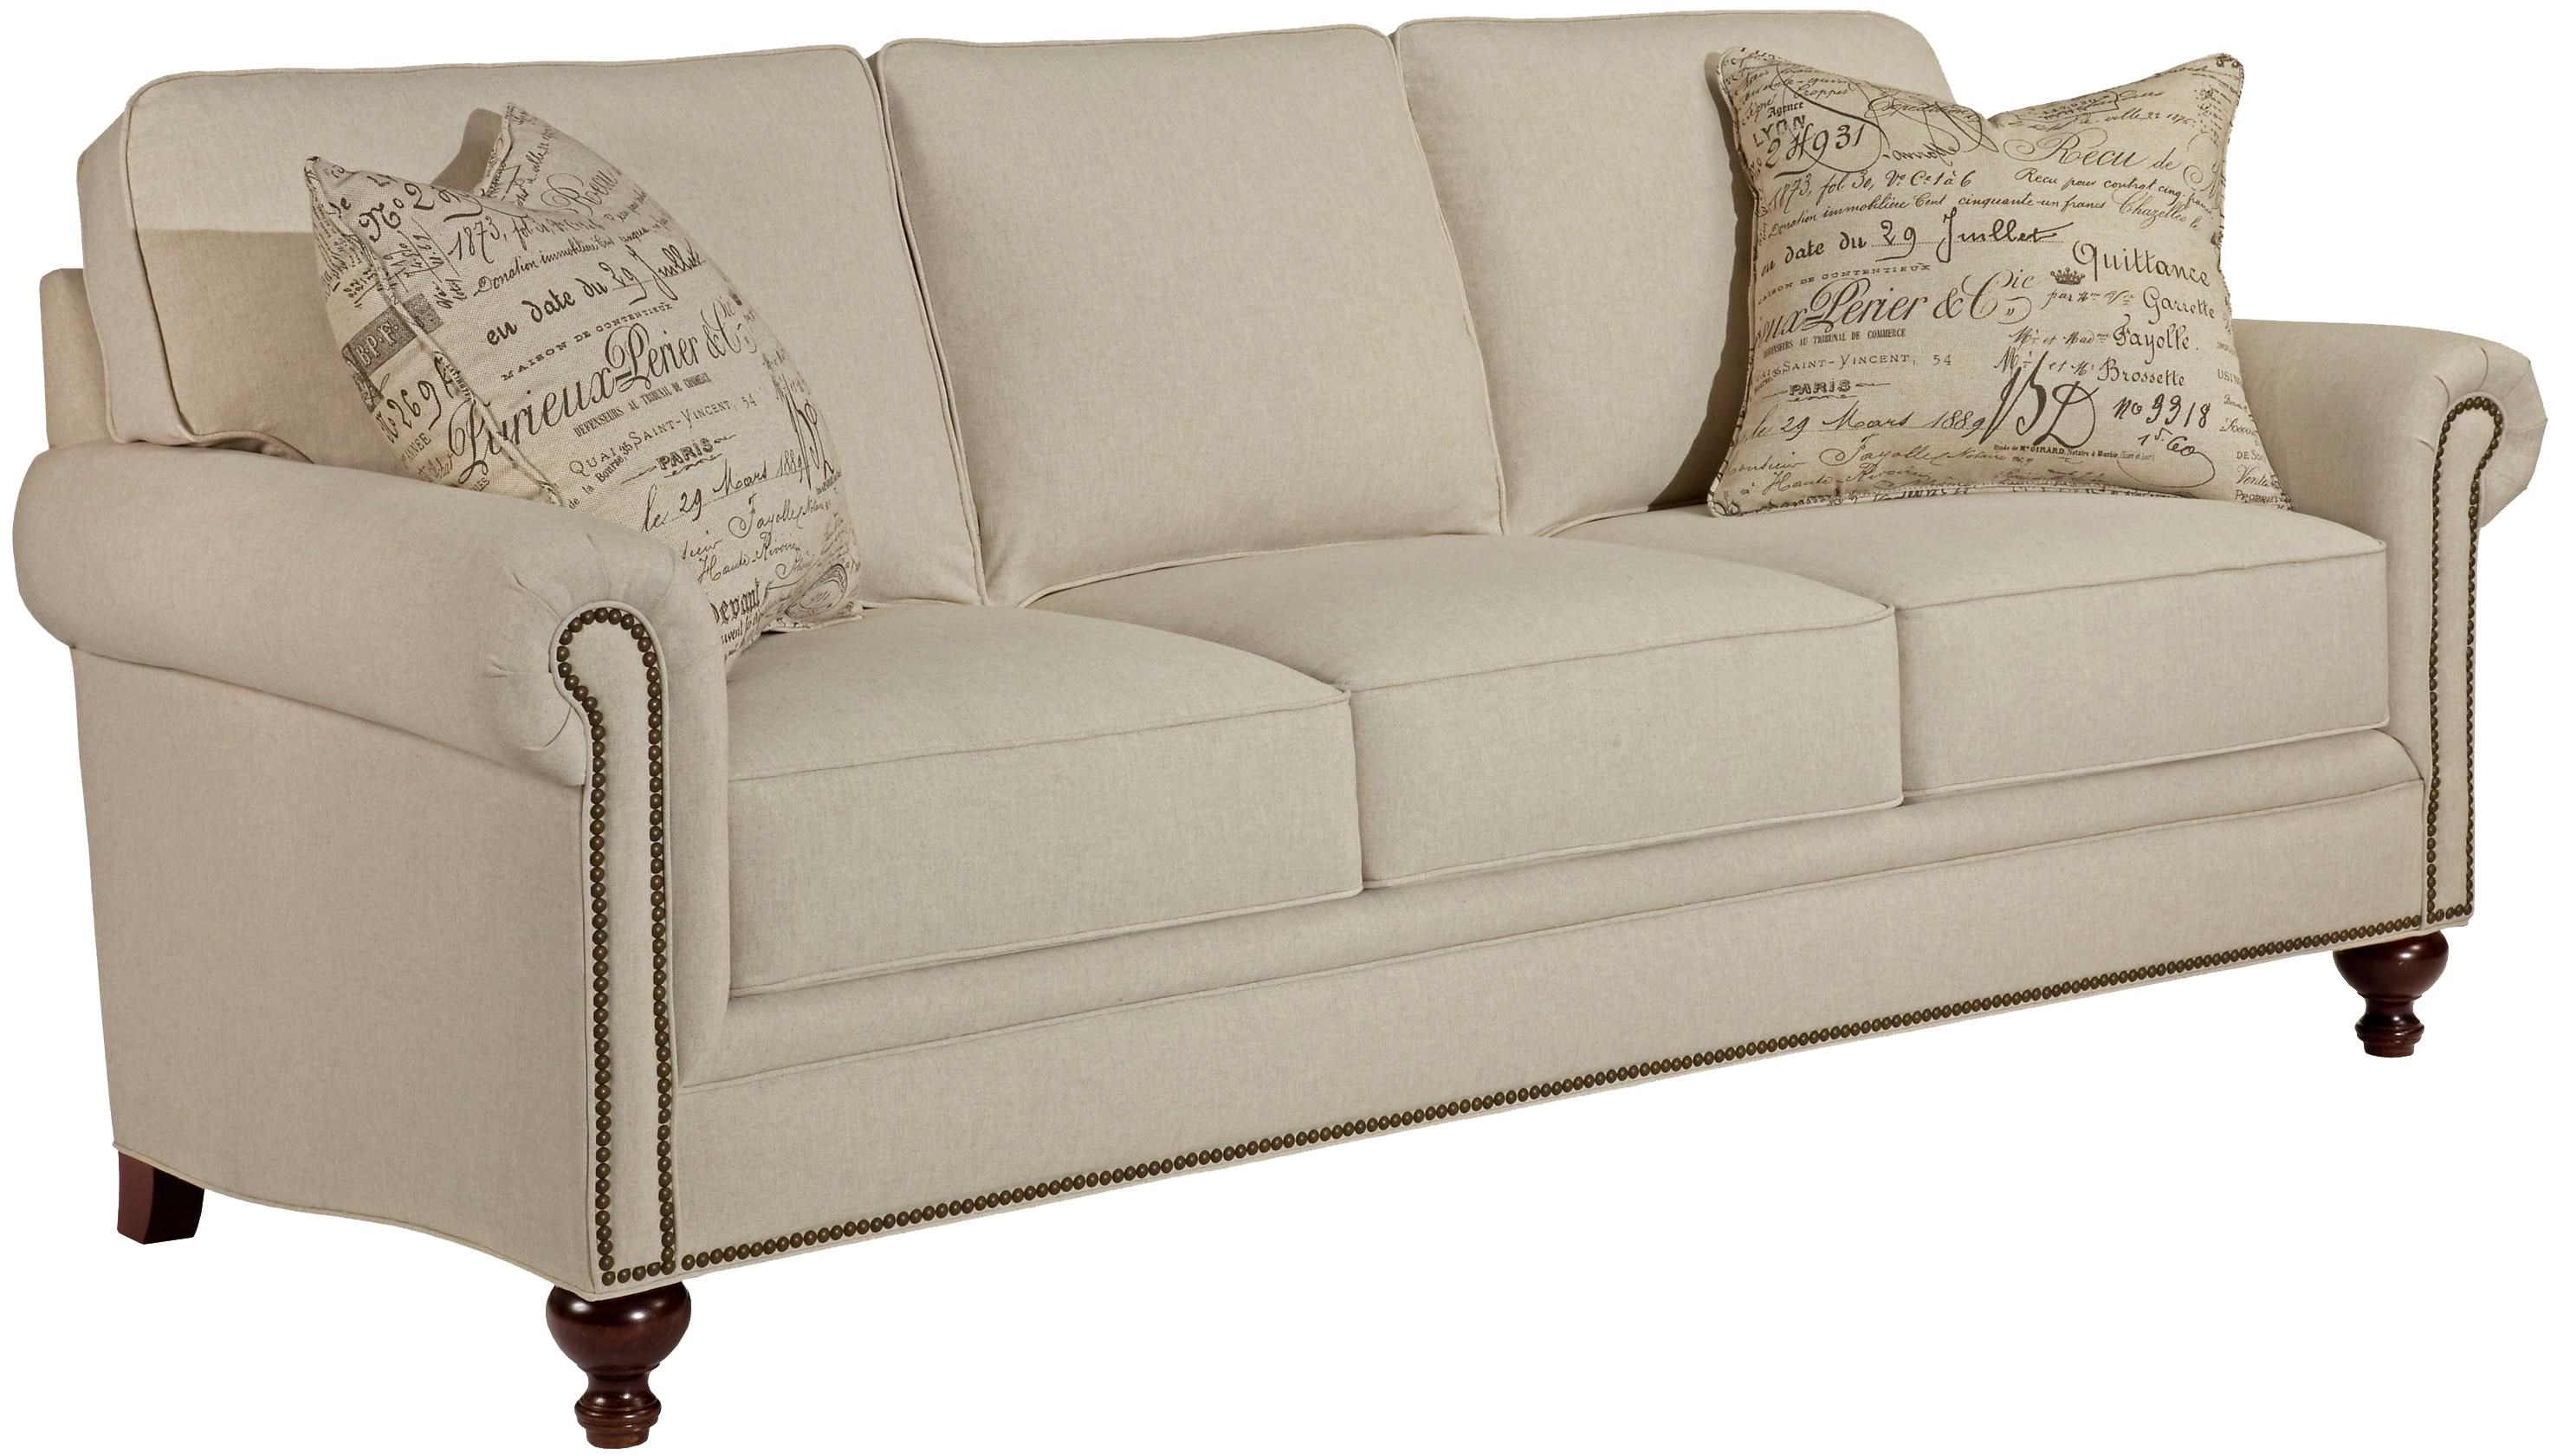 Incroyable Broyhill Furniture Harrison Traditional Style Sofa With Exposed Wood Feet